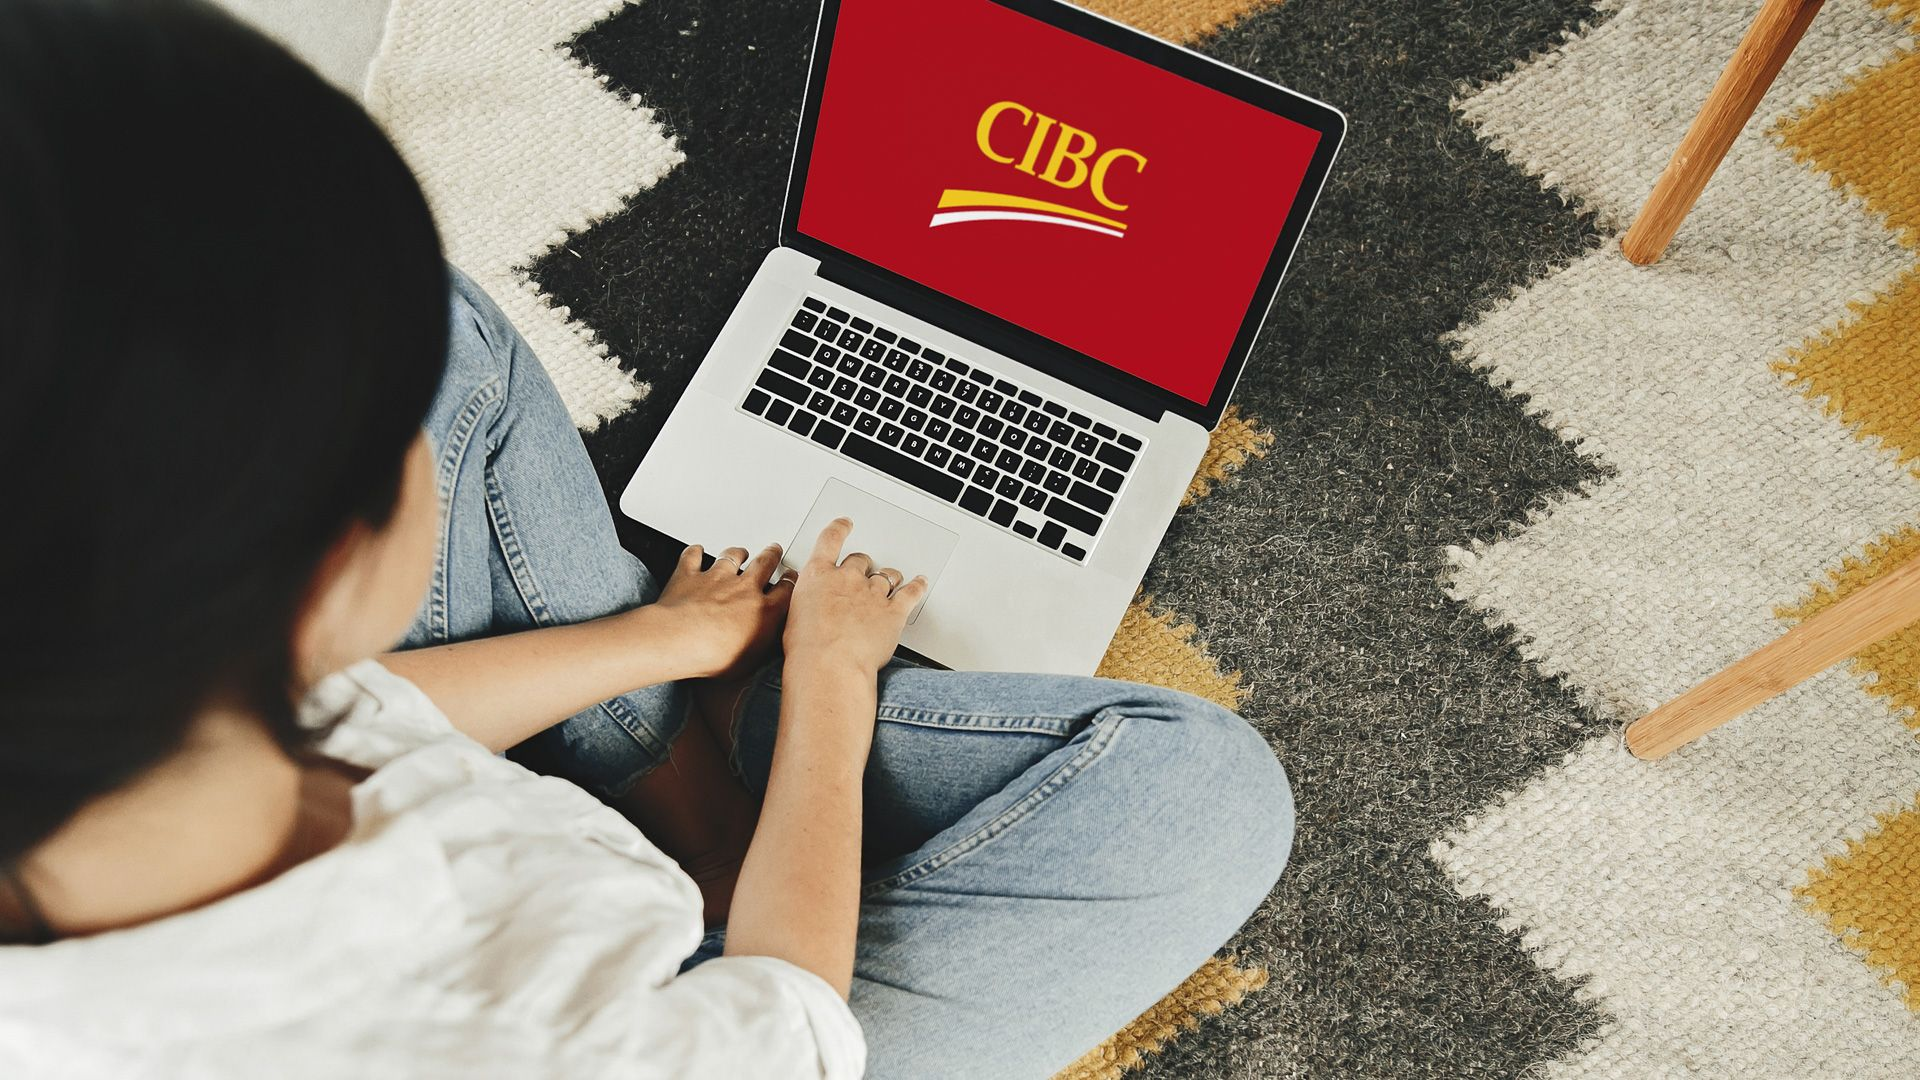 Canadian Imperial Bank of Commerce CIBC